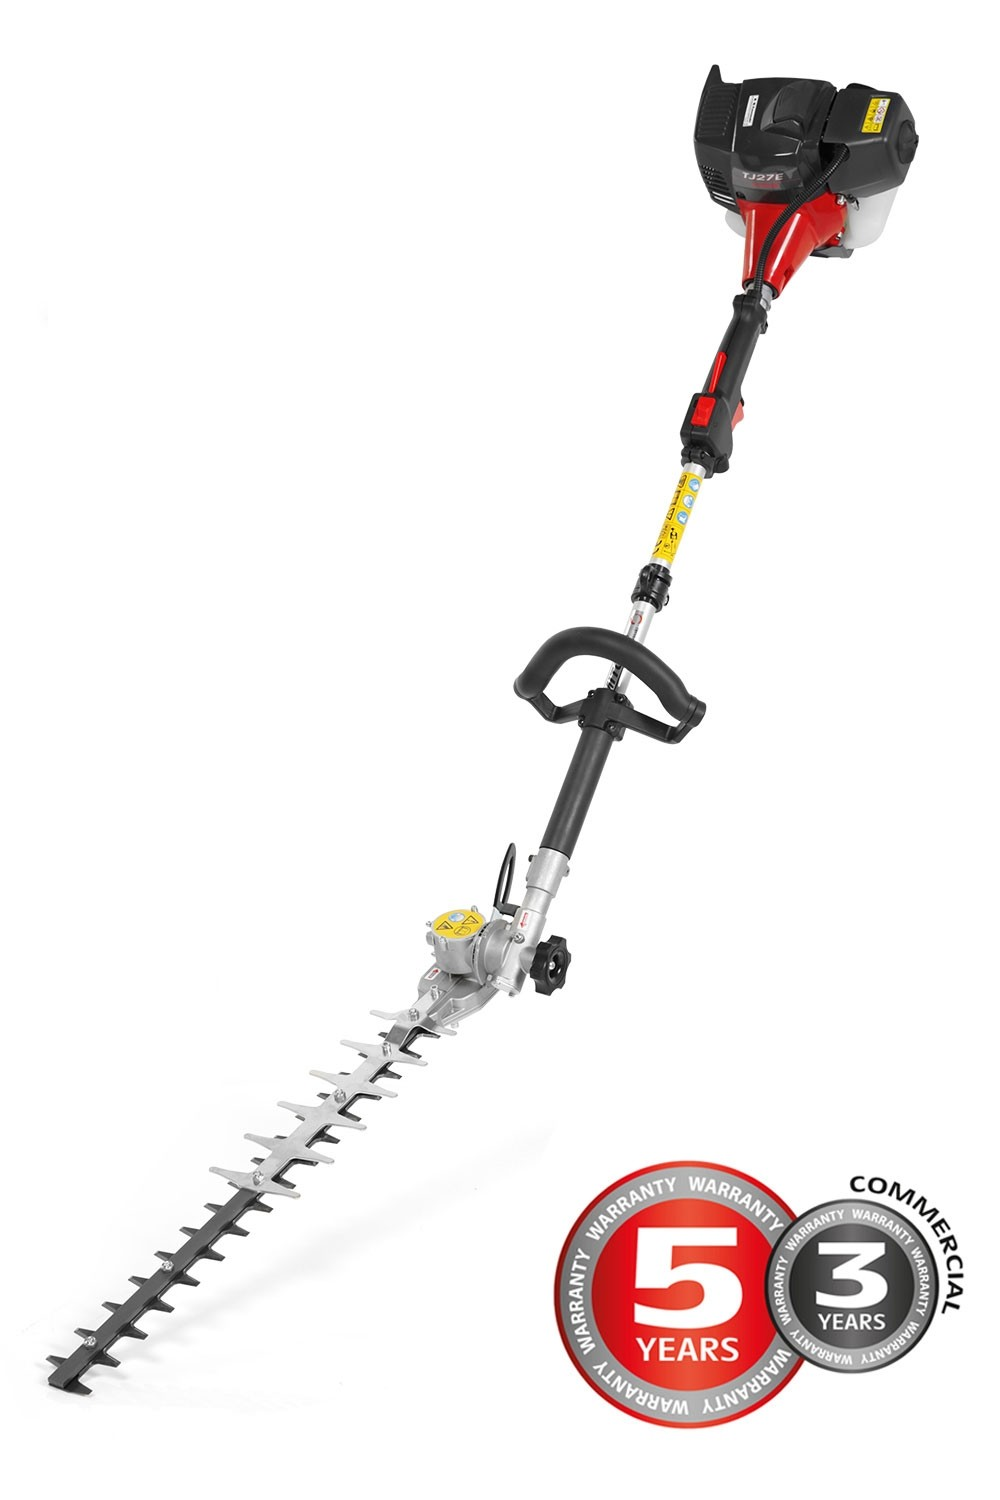 Mitox 5250SRK PRO mid reach hedge trimmer